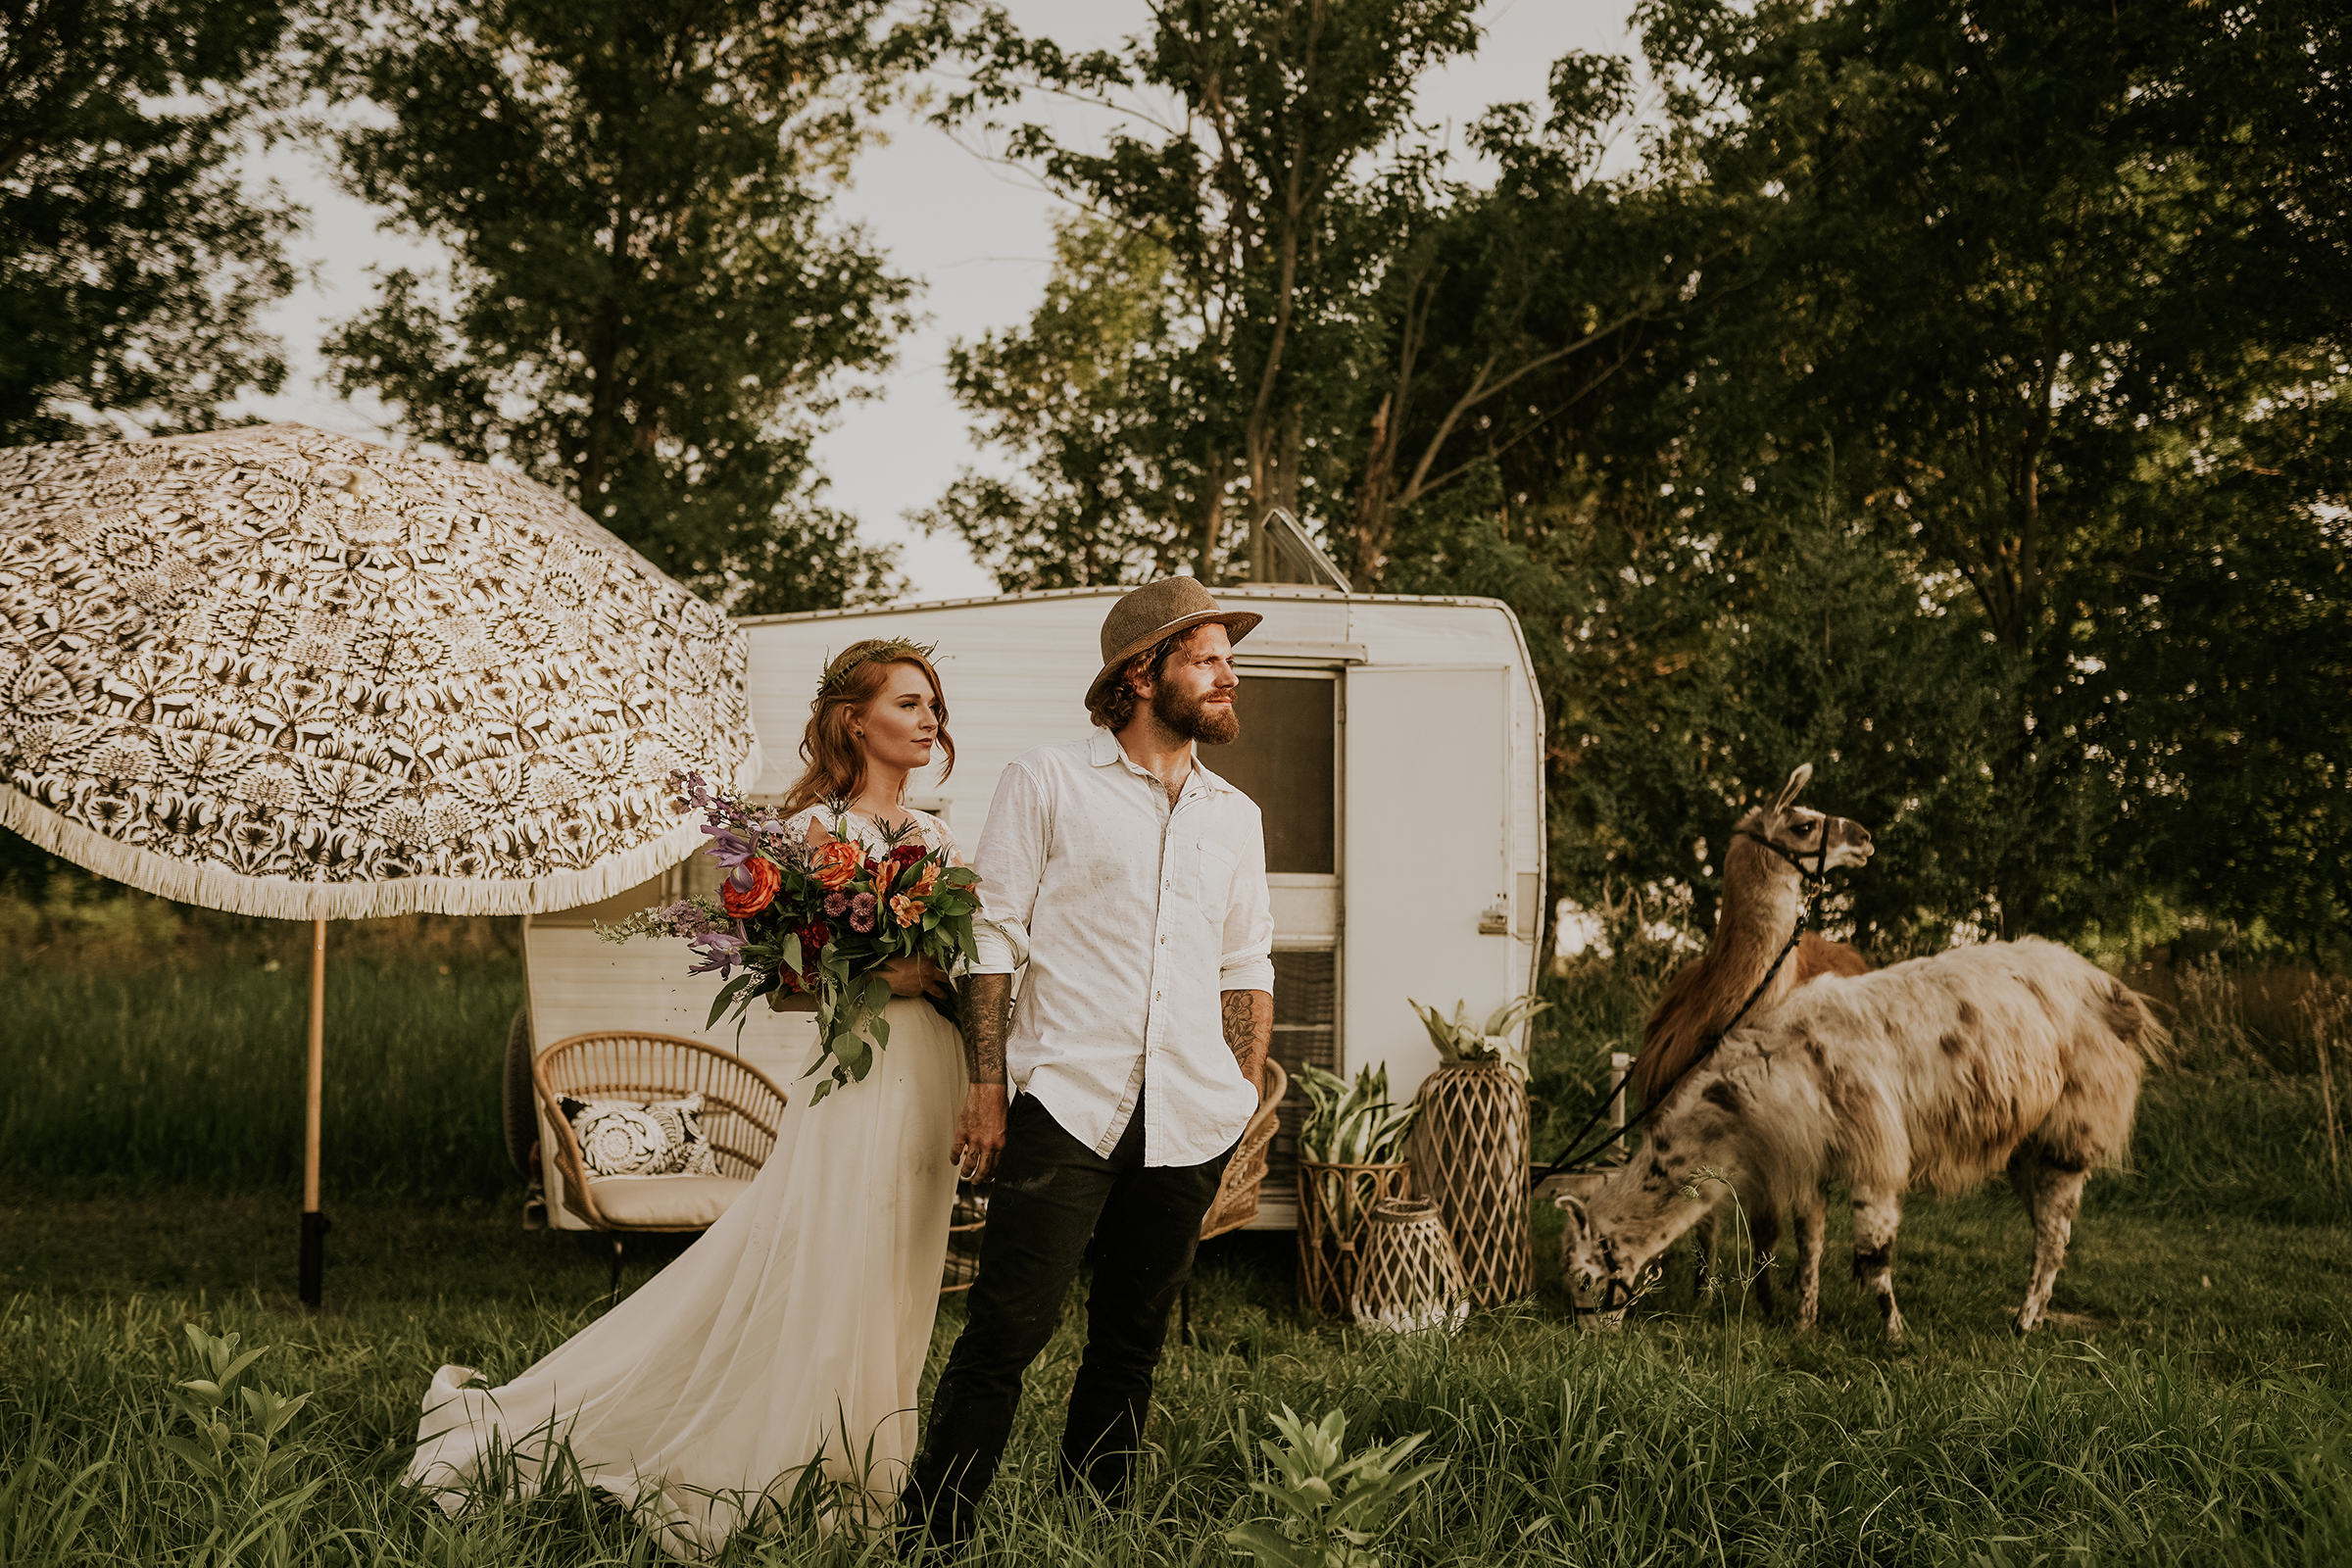 bride-groom-standing-in-front-of-camper-looking-out-myrtle-mae-iris-aisle-dame-maiden-lavender-blue-floral-raelyn-ramey-photography.jpg